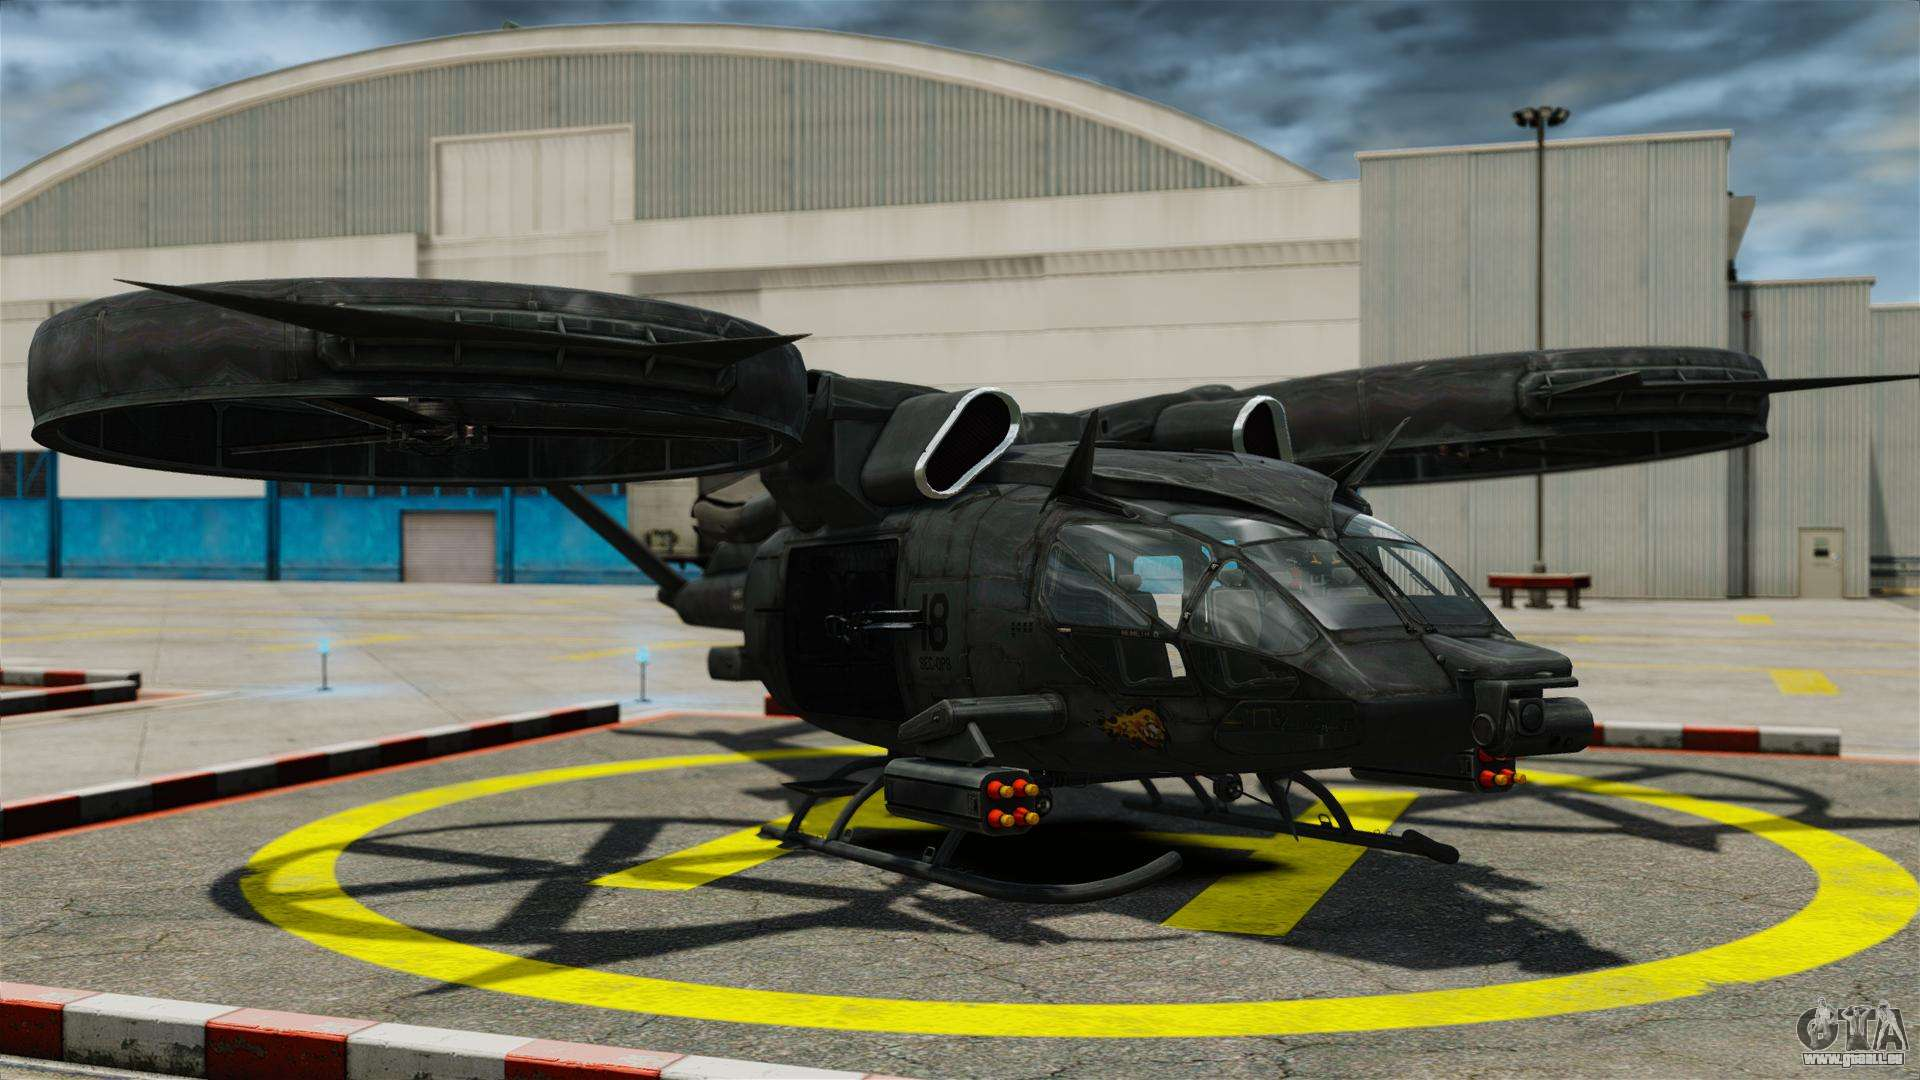 helicopter gta 5 with 27061 Transportnyy Vertolet Sa 2 Samson on 1100 6427723 together with Grand Theft Auto 5 Gta V Xbox 360 Cheat Sheet furthermore Watch besides Lester Crest also Car Controls.